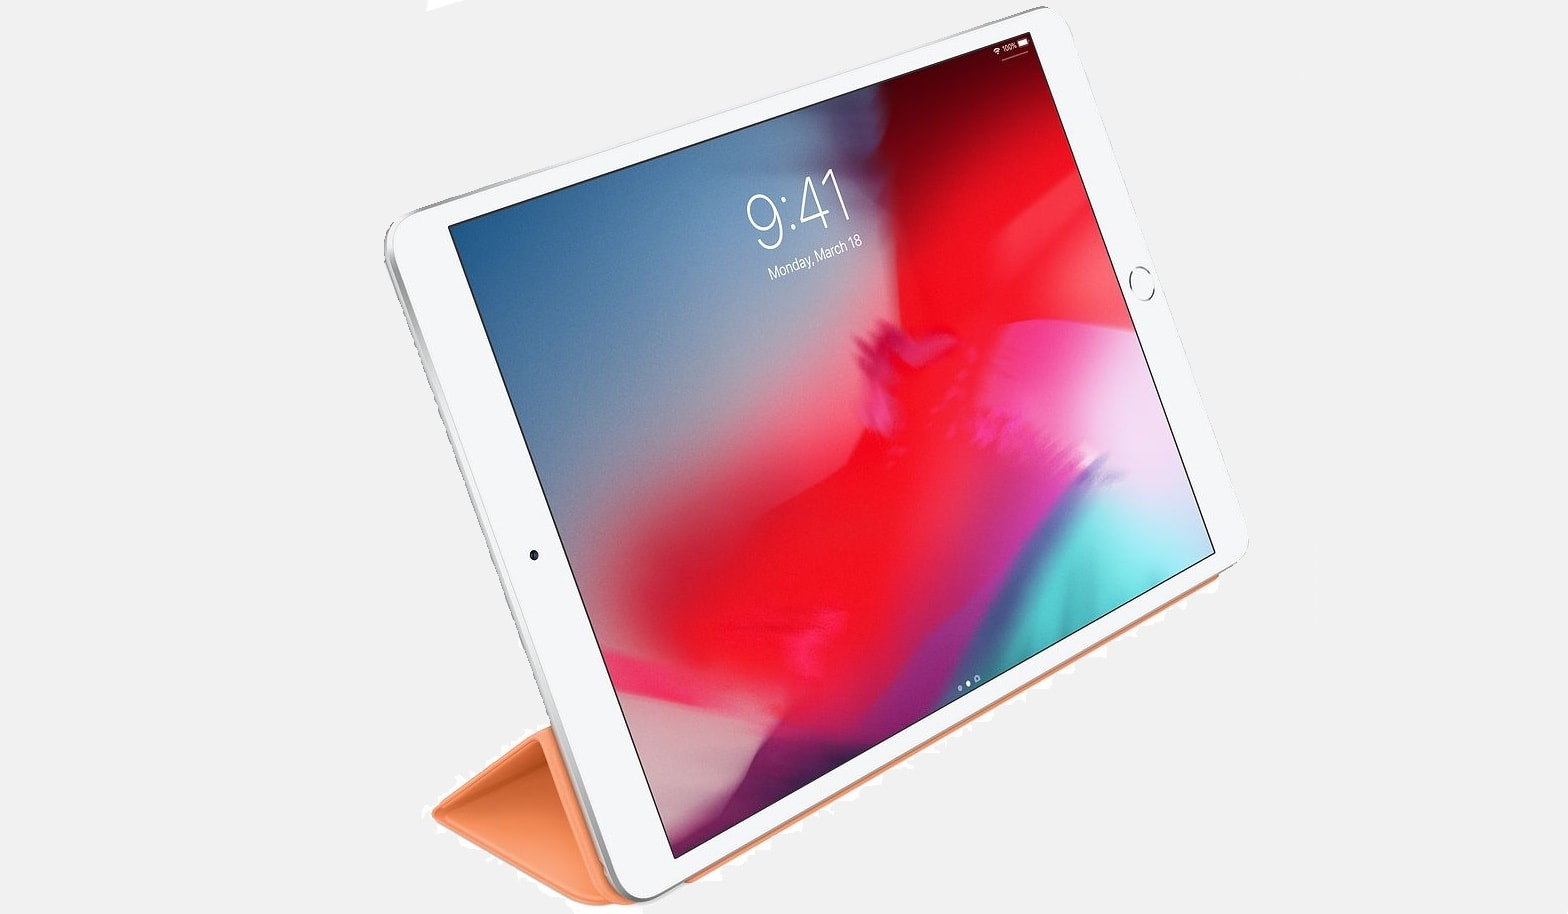 Here's the Smart Cover for the latest iPad models in papaya.